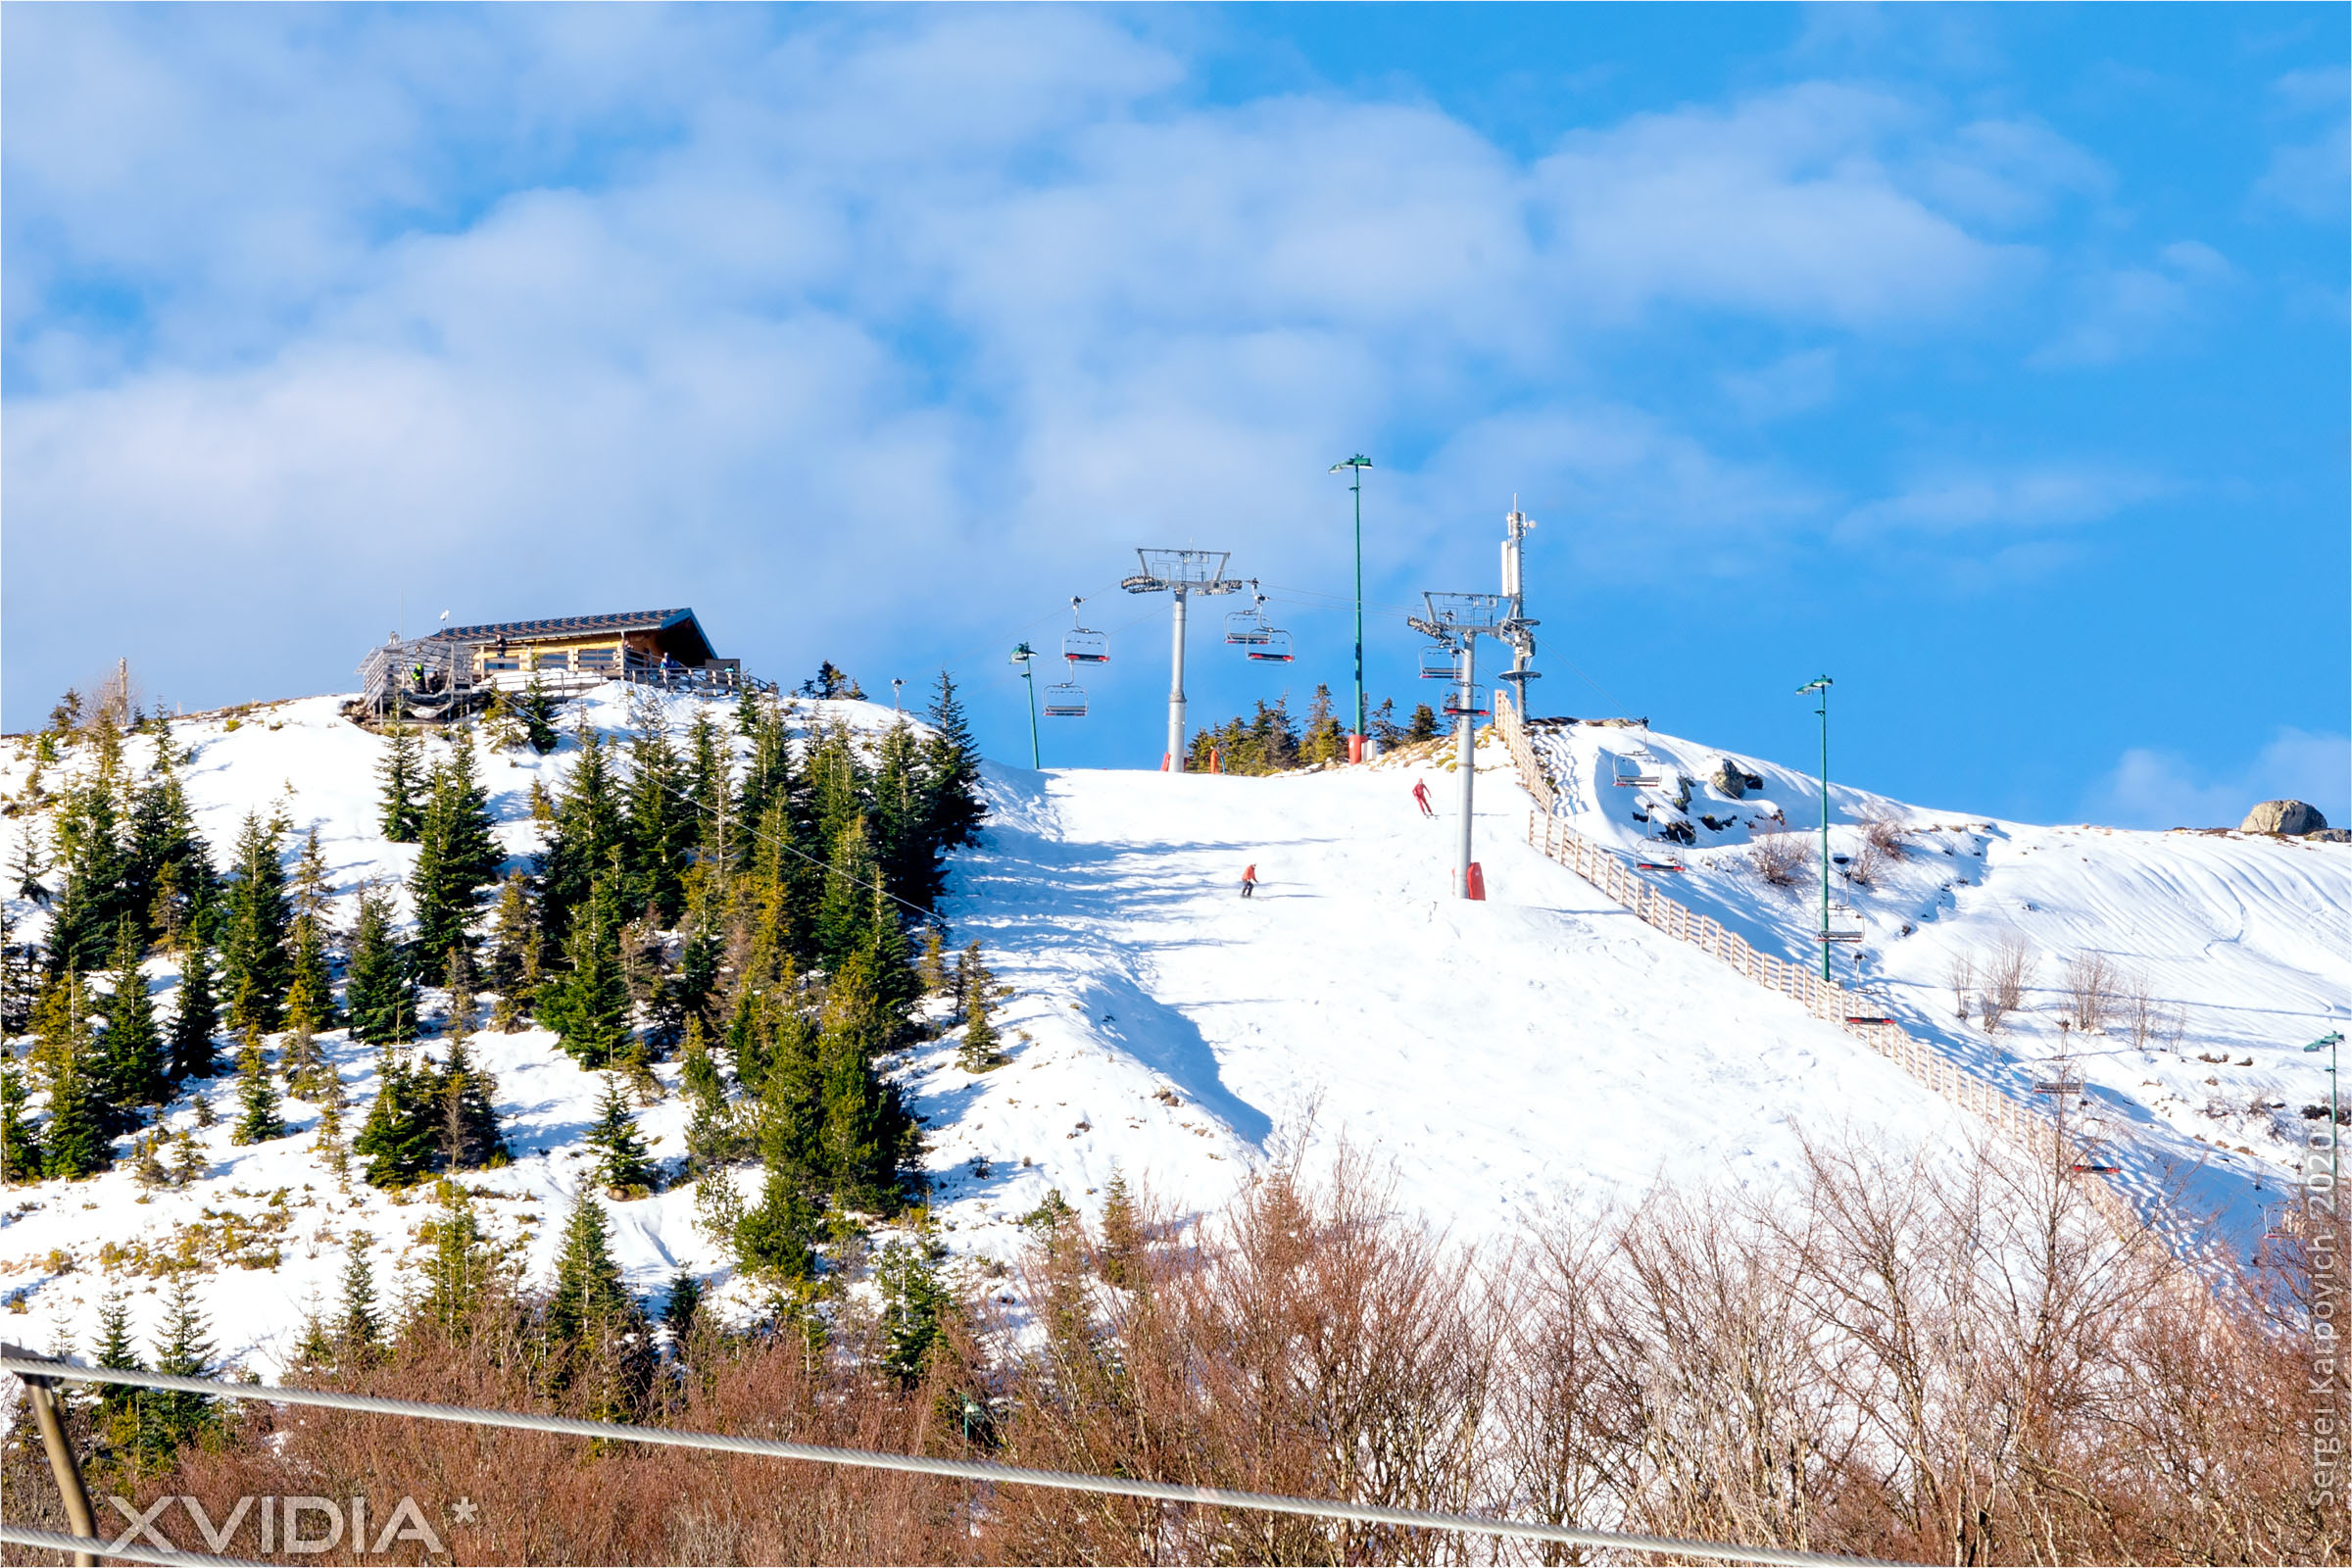 XVIDIA Super-Besse Ski-Area